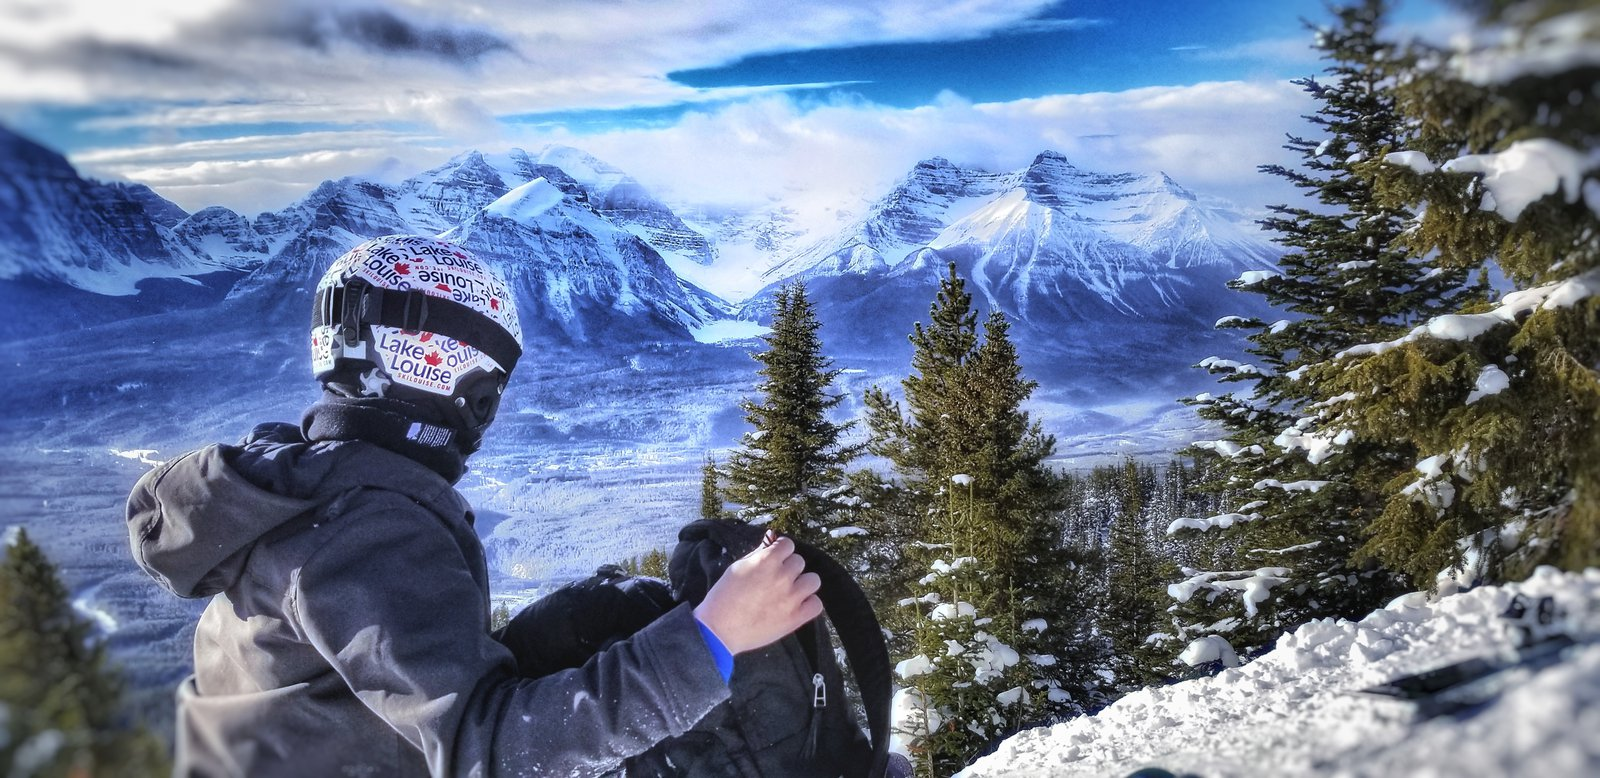 Views from lake louise!!!